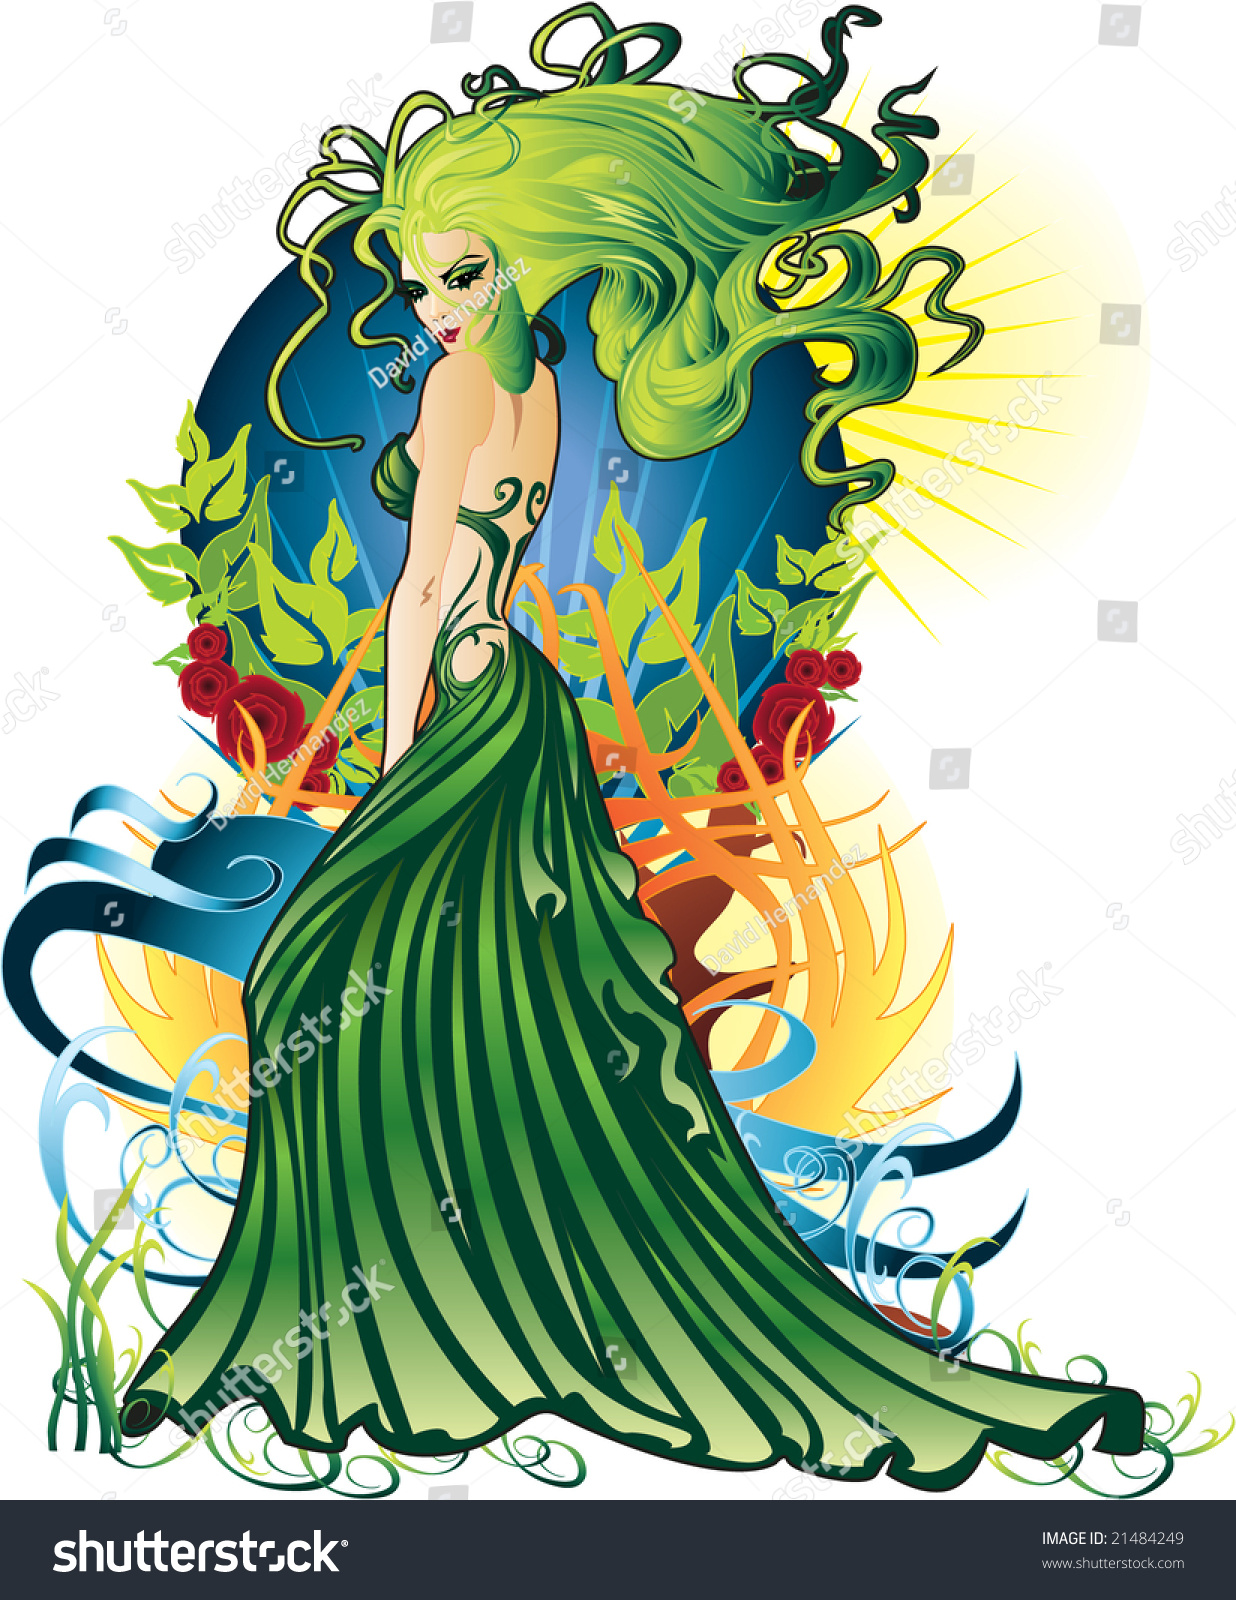 Mother nature clipart images galleries with a bite - Mother earth clipart ...